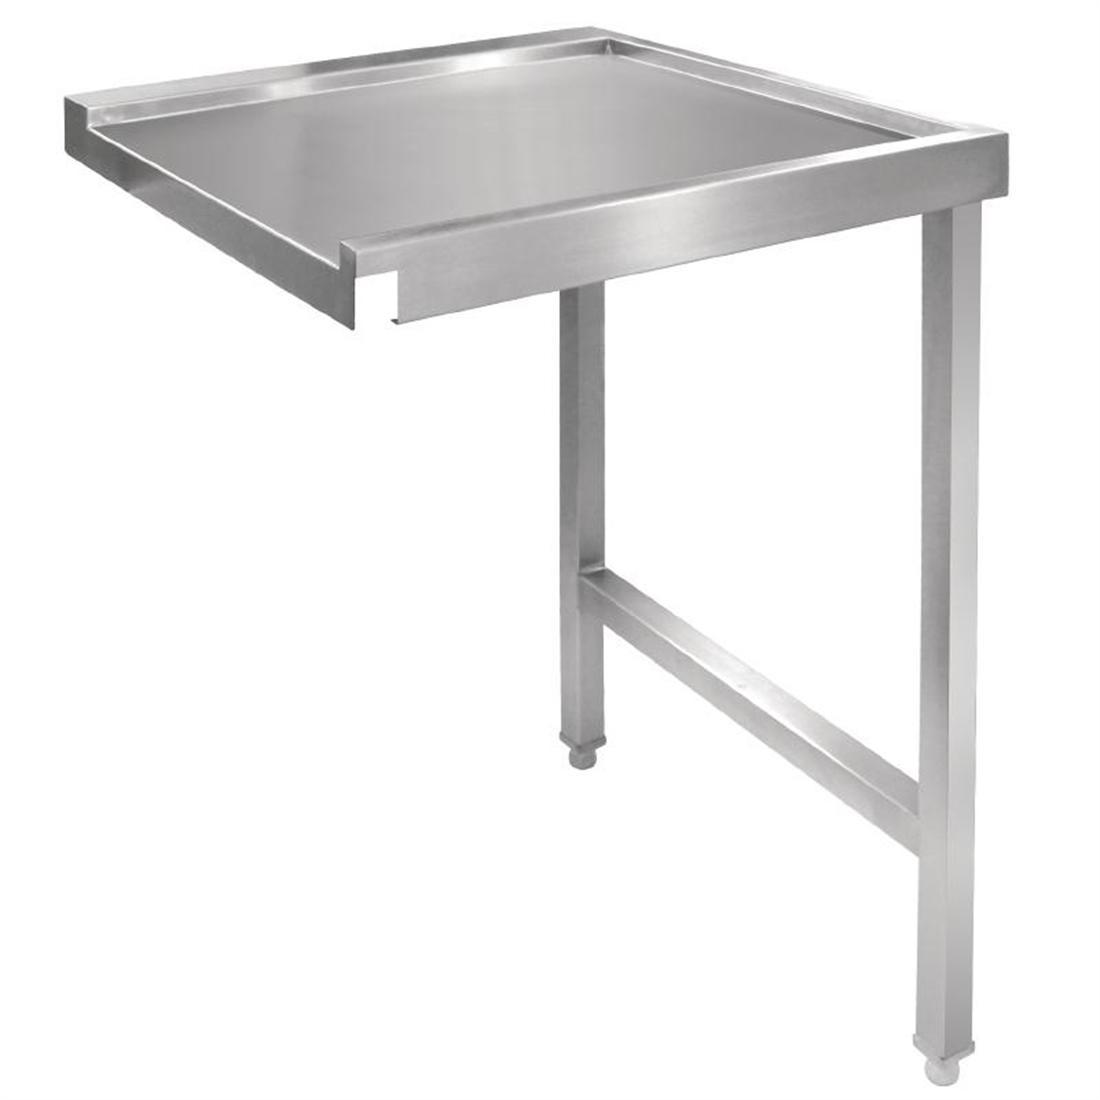 Vogue Pass Through Dishwash Table Right 600mm - Each - GJ534